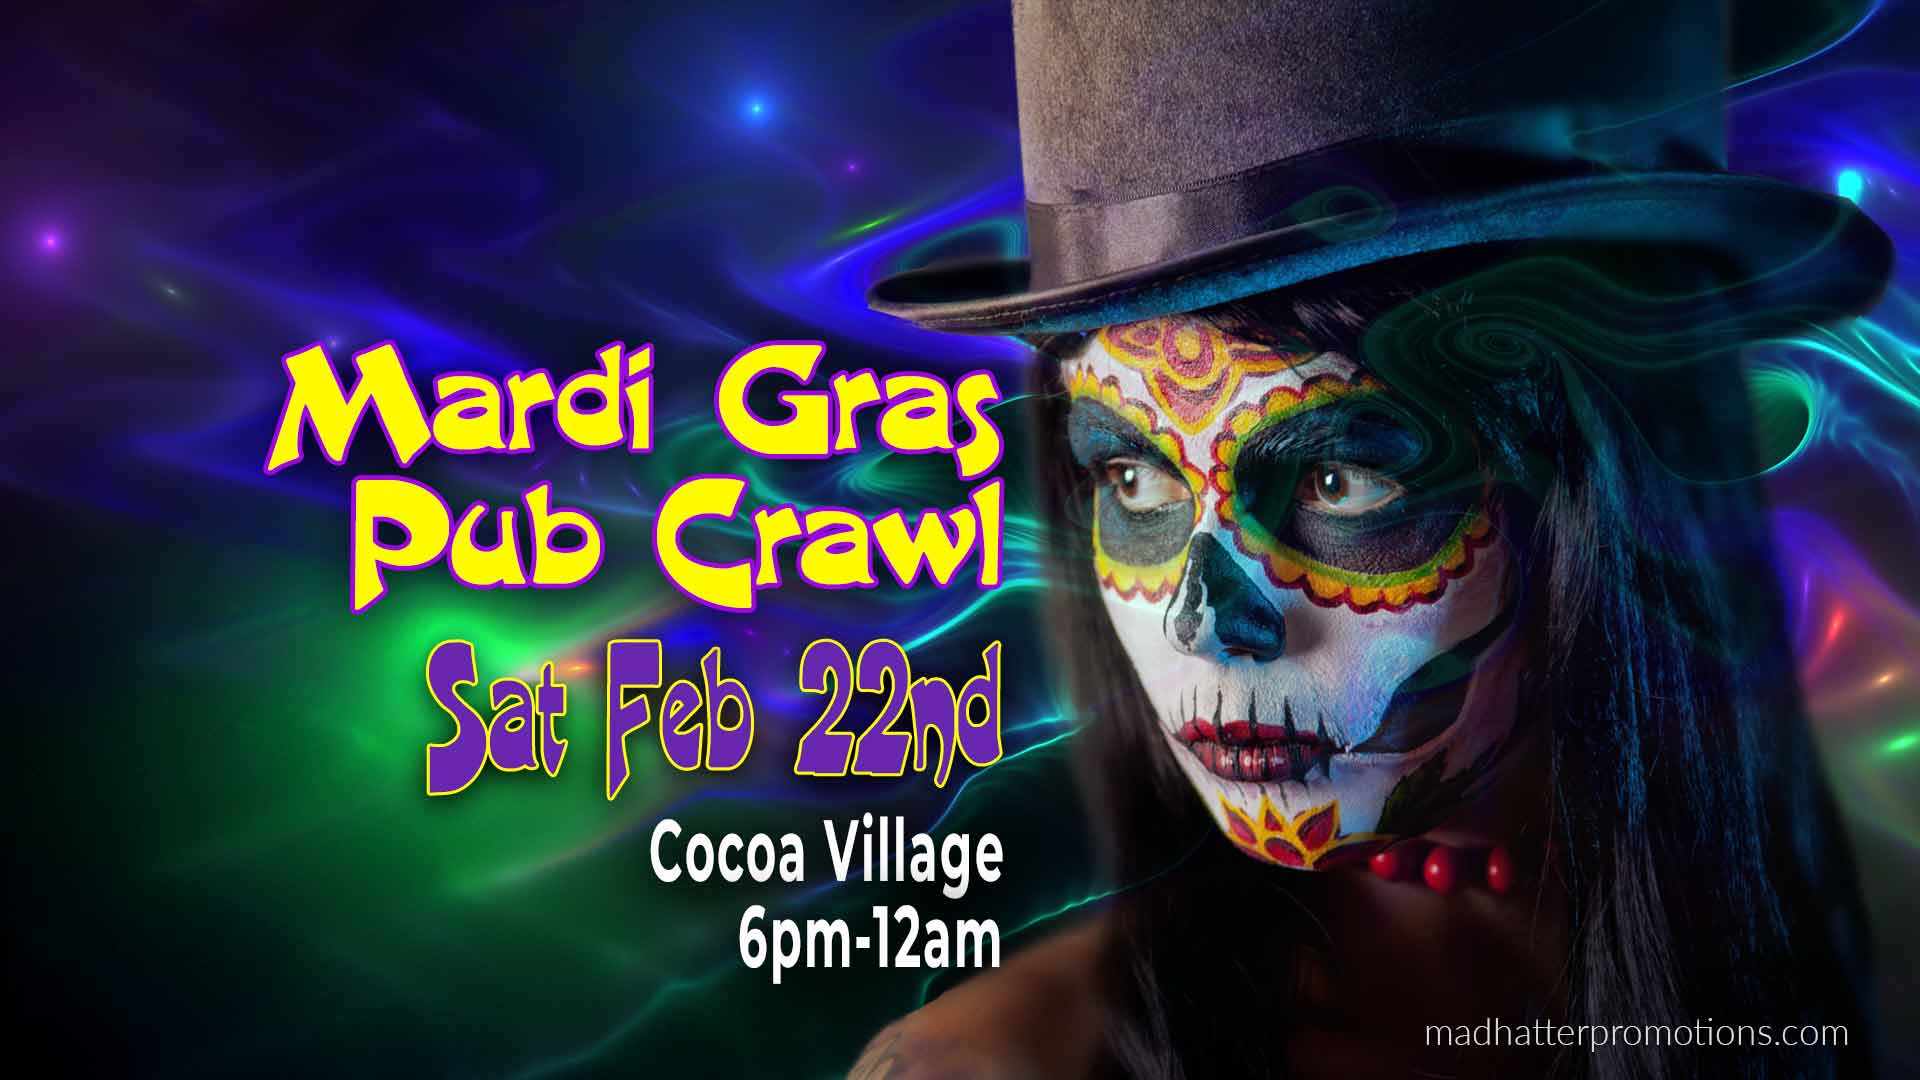 2020 Mardi Gras Pub Crawl Historic Cocoa Village, Saturday, February 22, 2020 – 6:00 pm to midnight